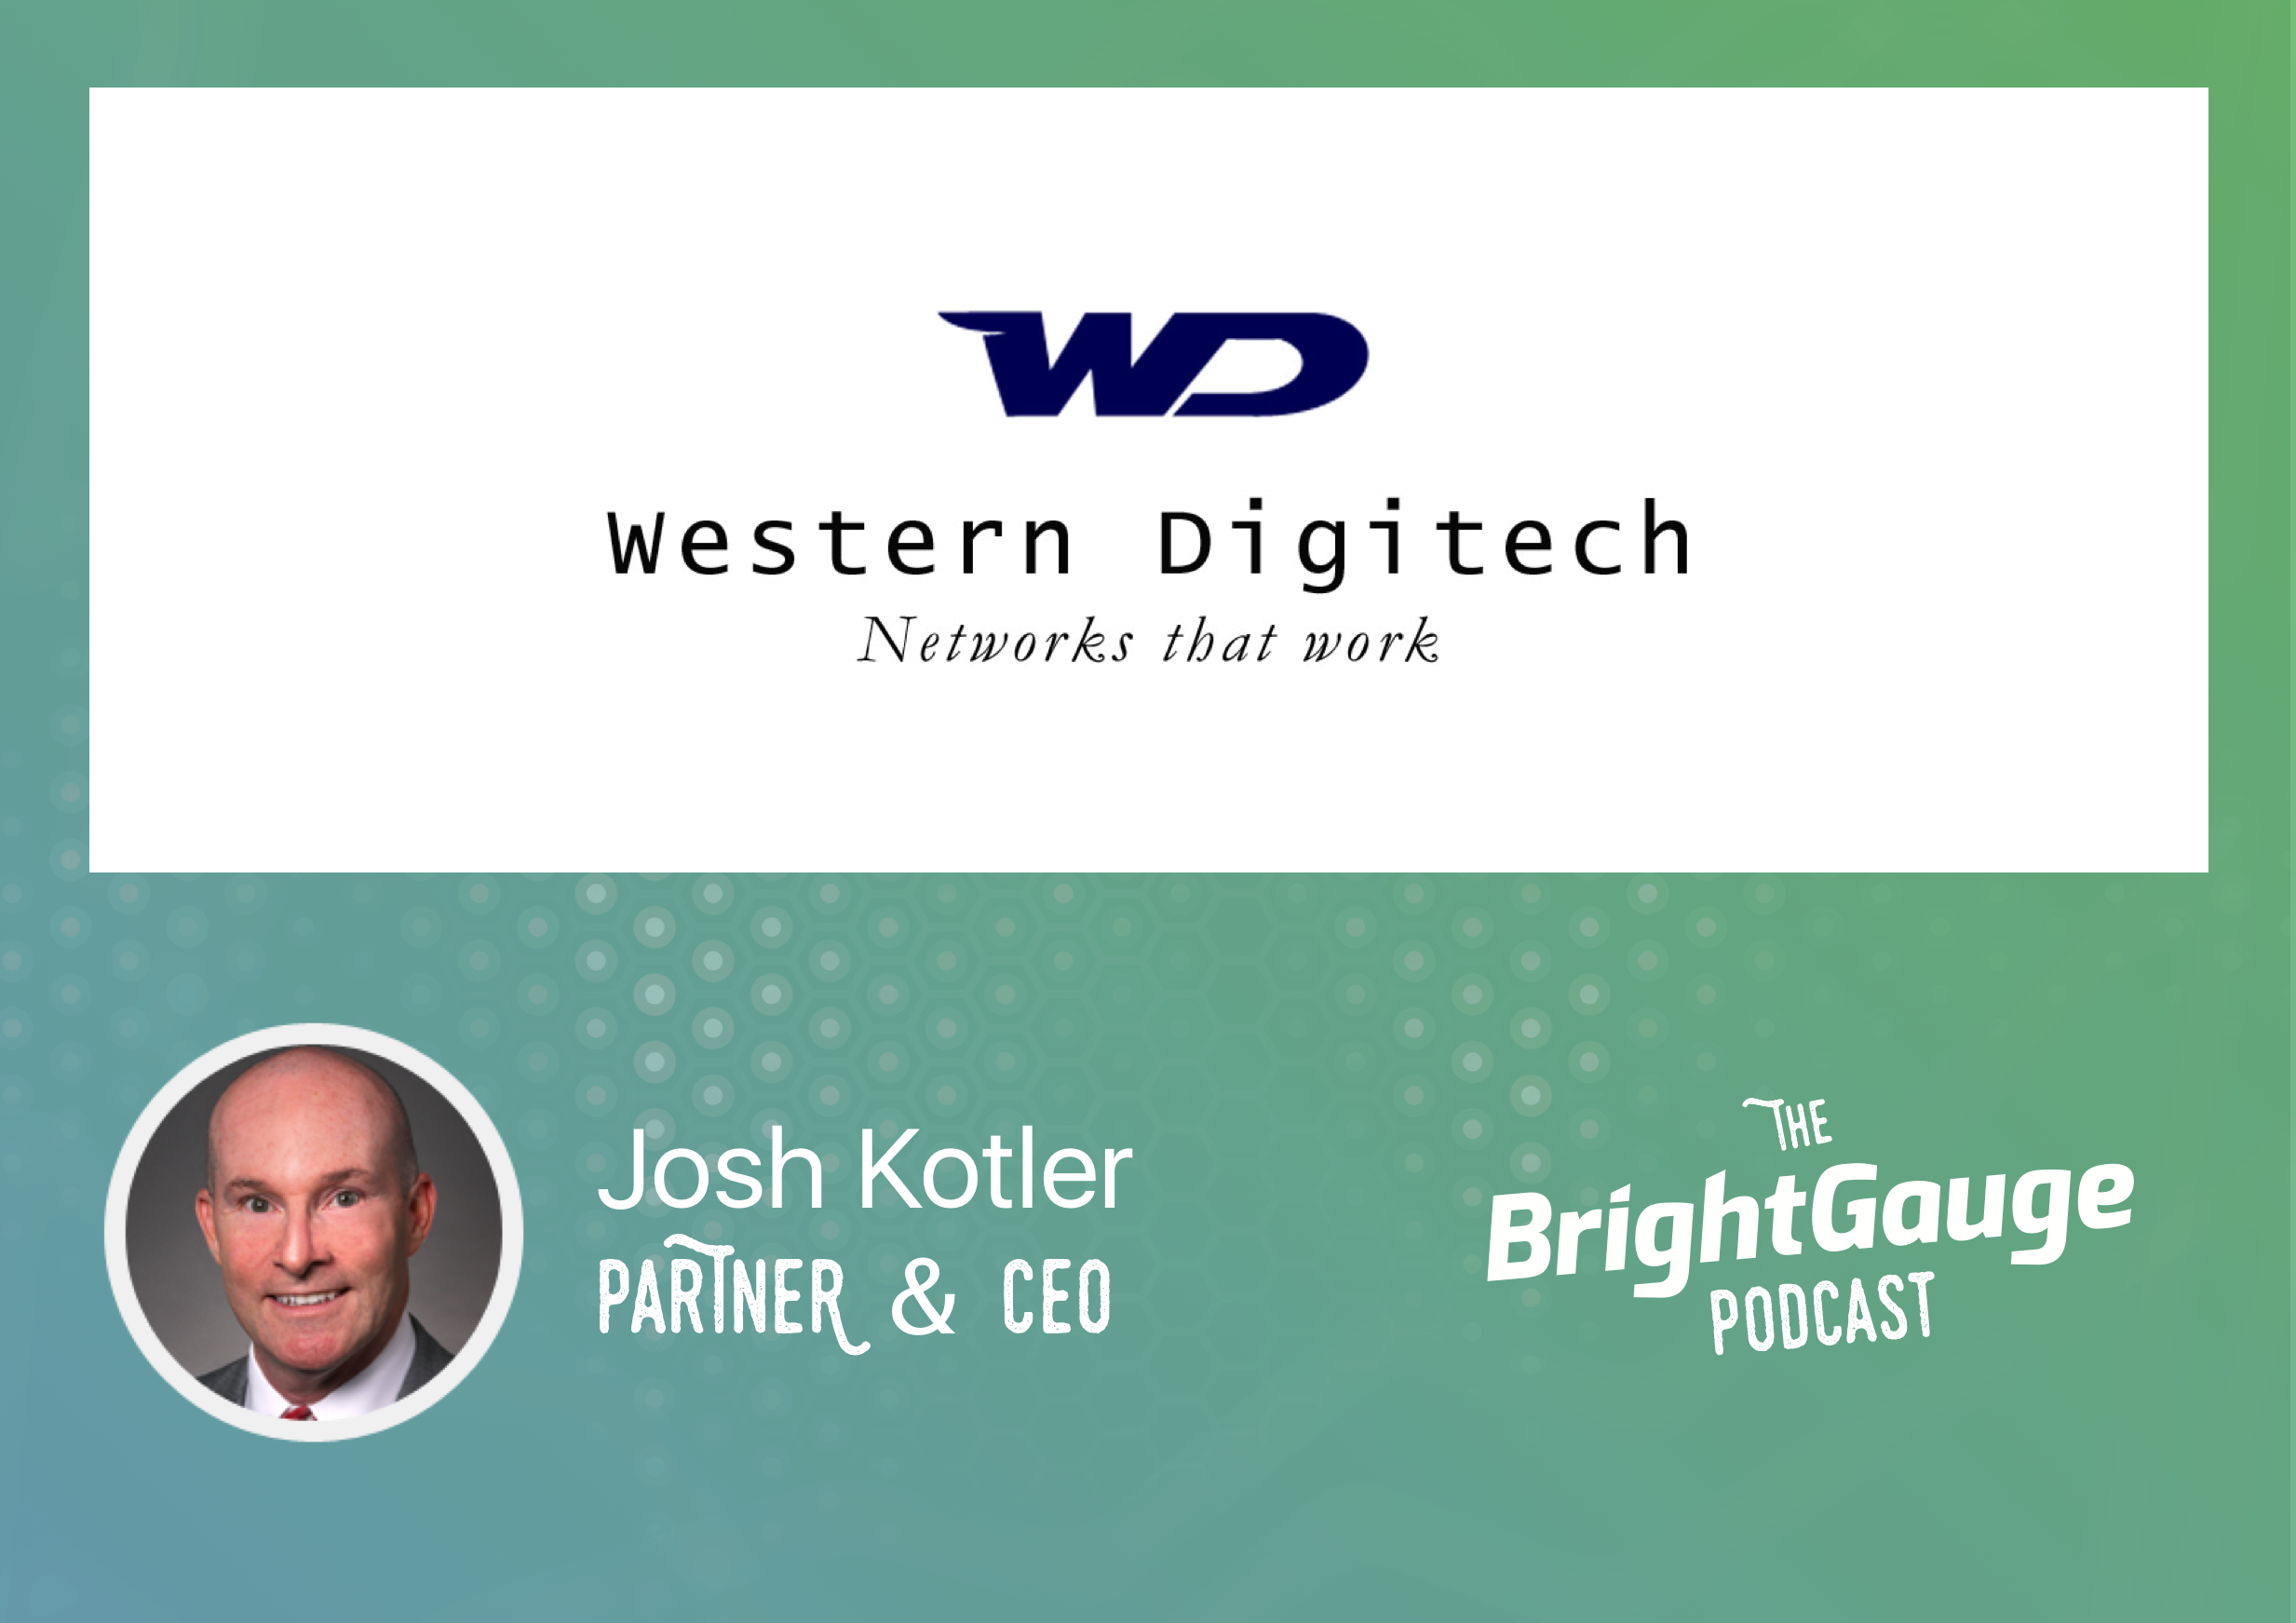 [Podcast] Episode 5 with Josh Kotler of Western Digitech